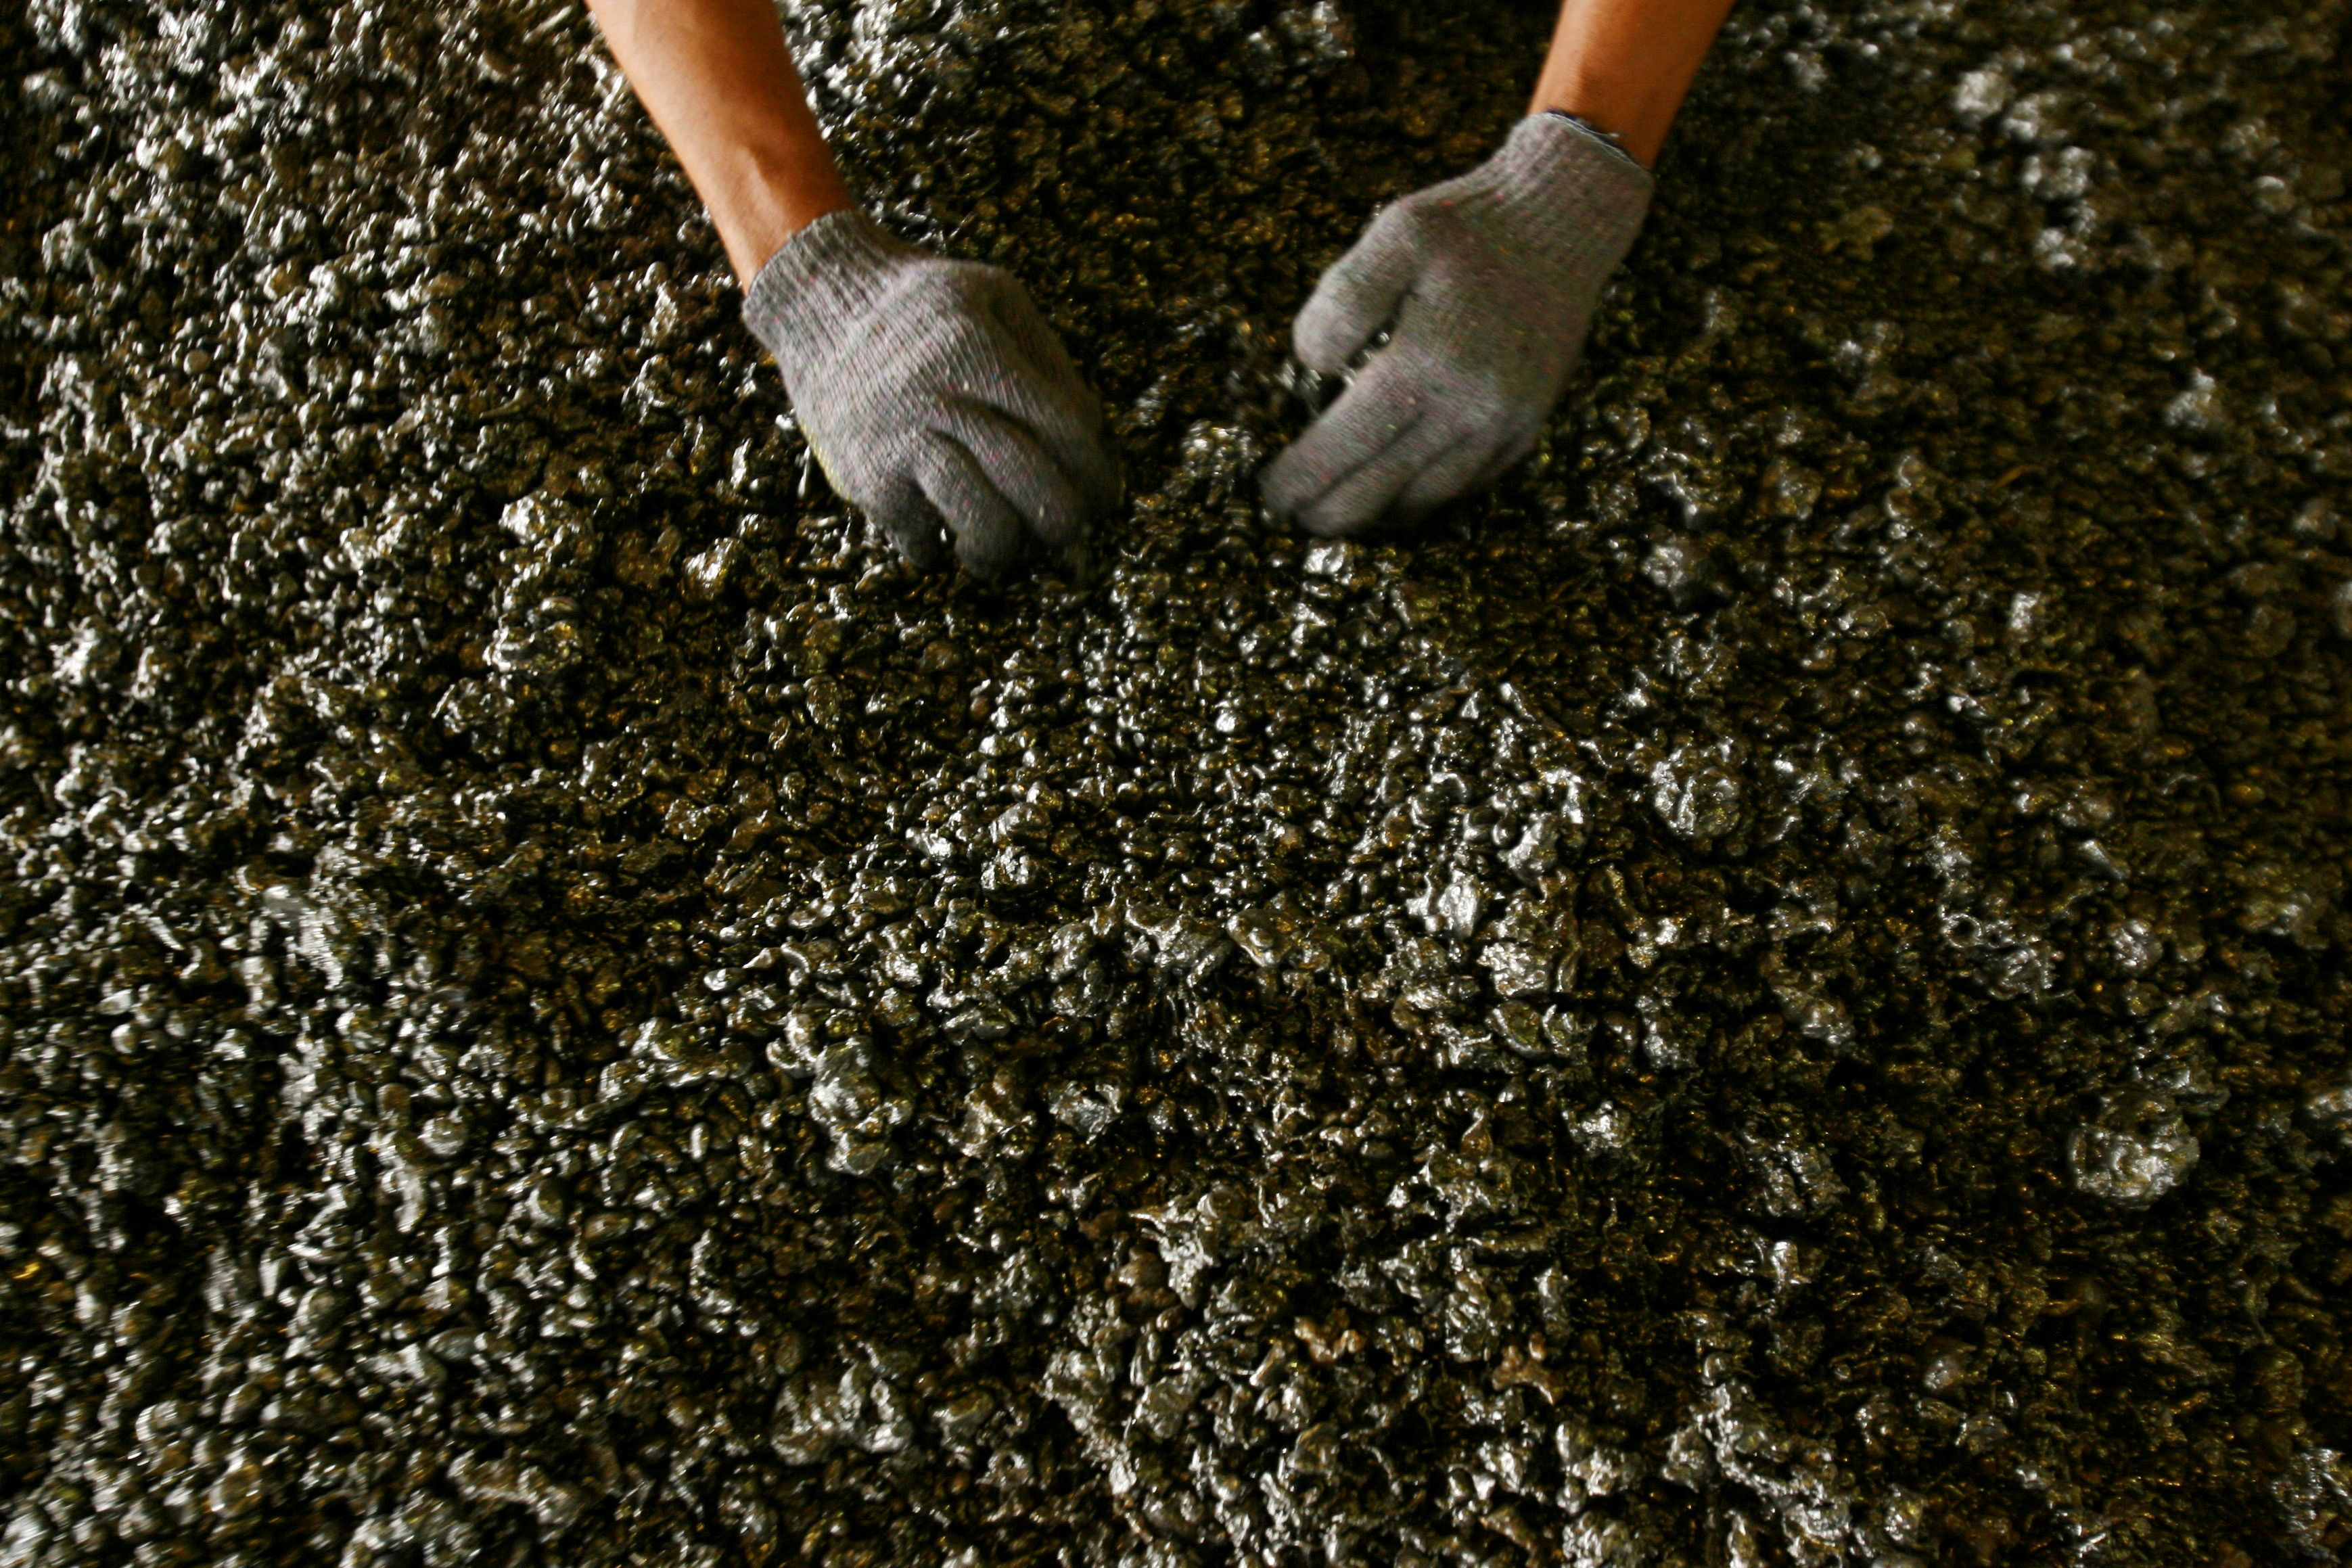 A worker displays nickel ore in a ferronickel smelter owned by state miner Aneka Tambang Tbk at Pomala district, Indonesia, March 30, 2011.   REUTERS/Yusuf Ahmad